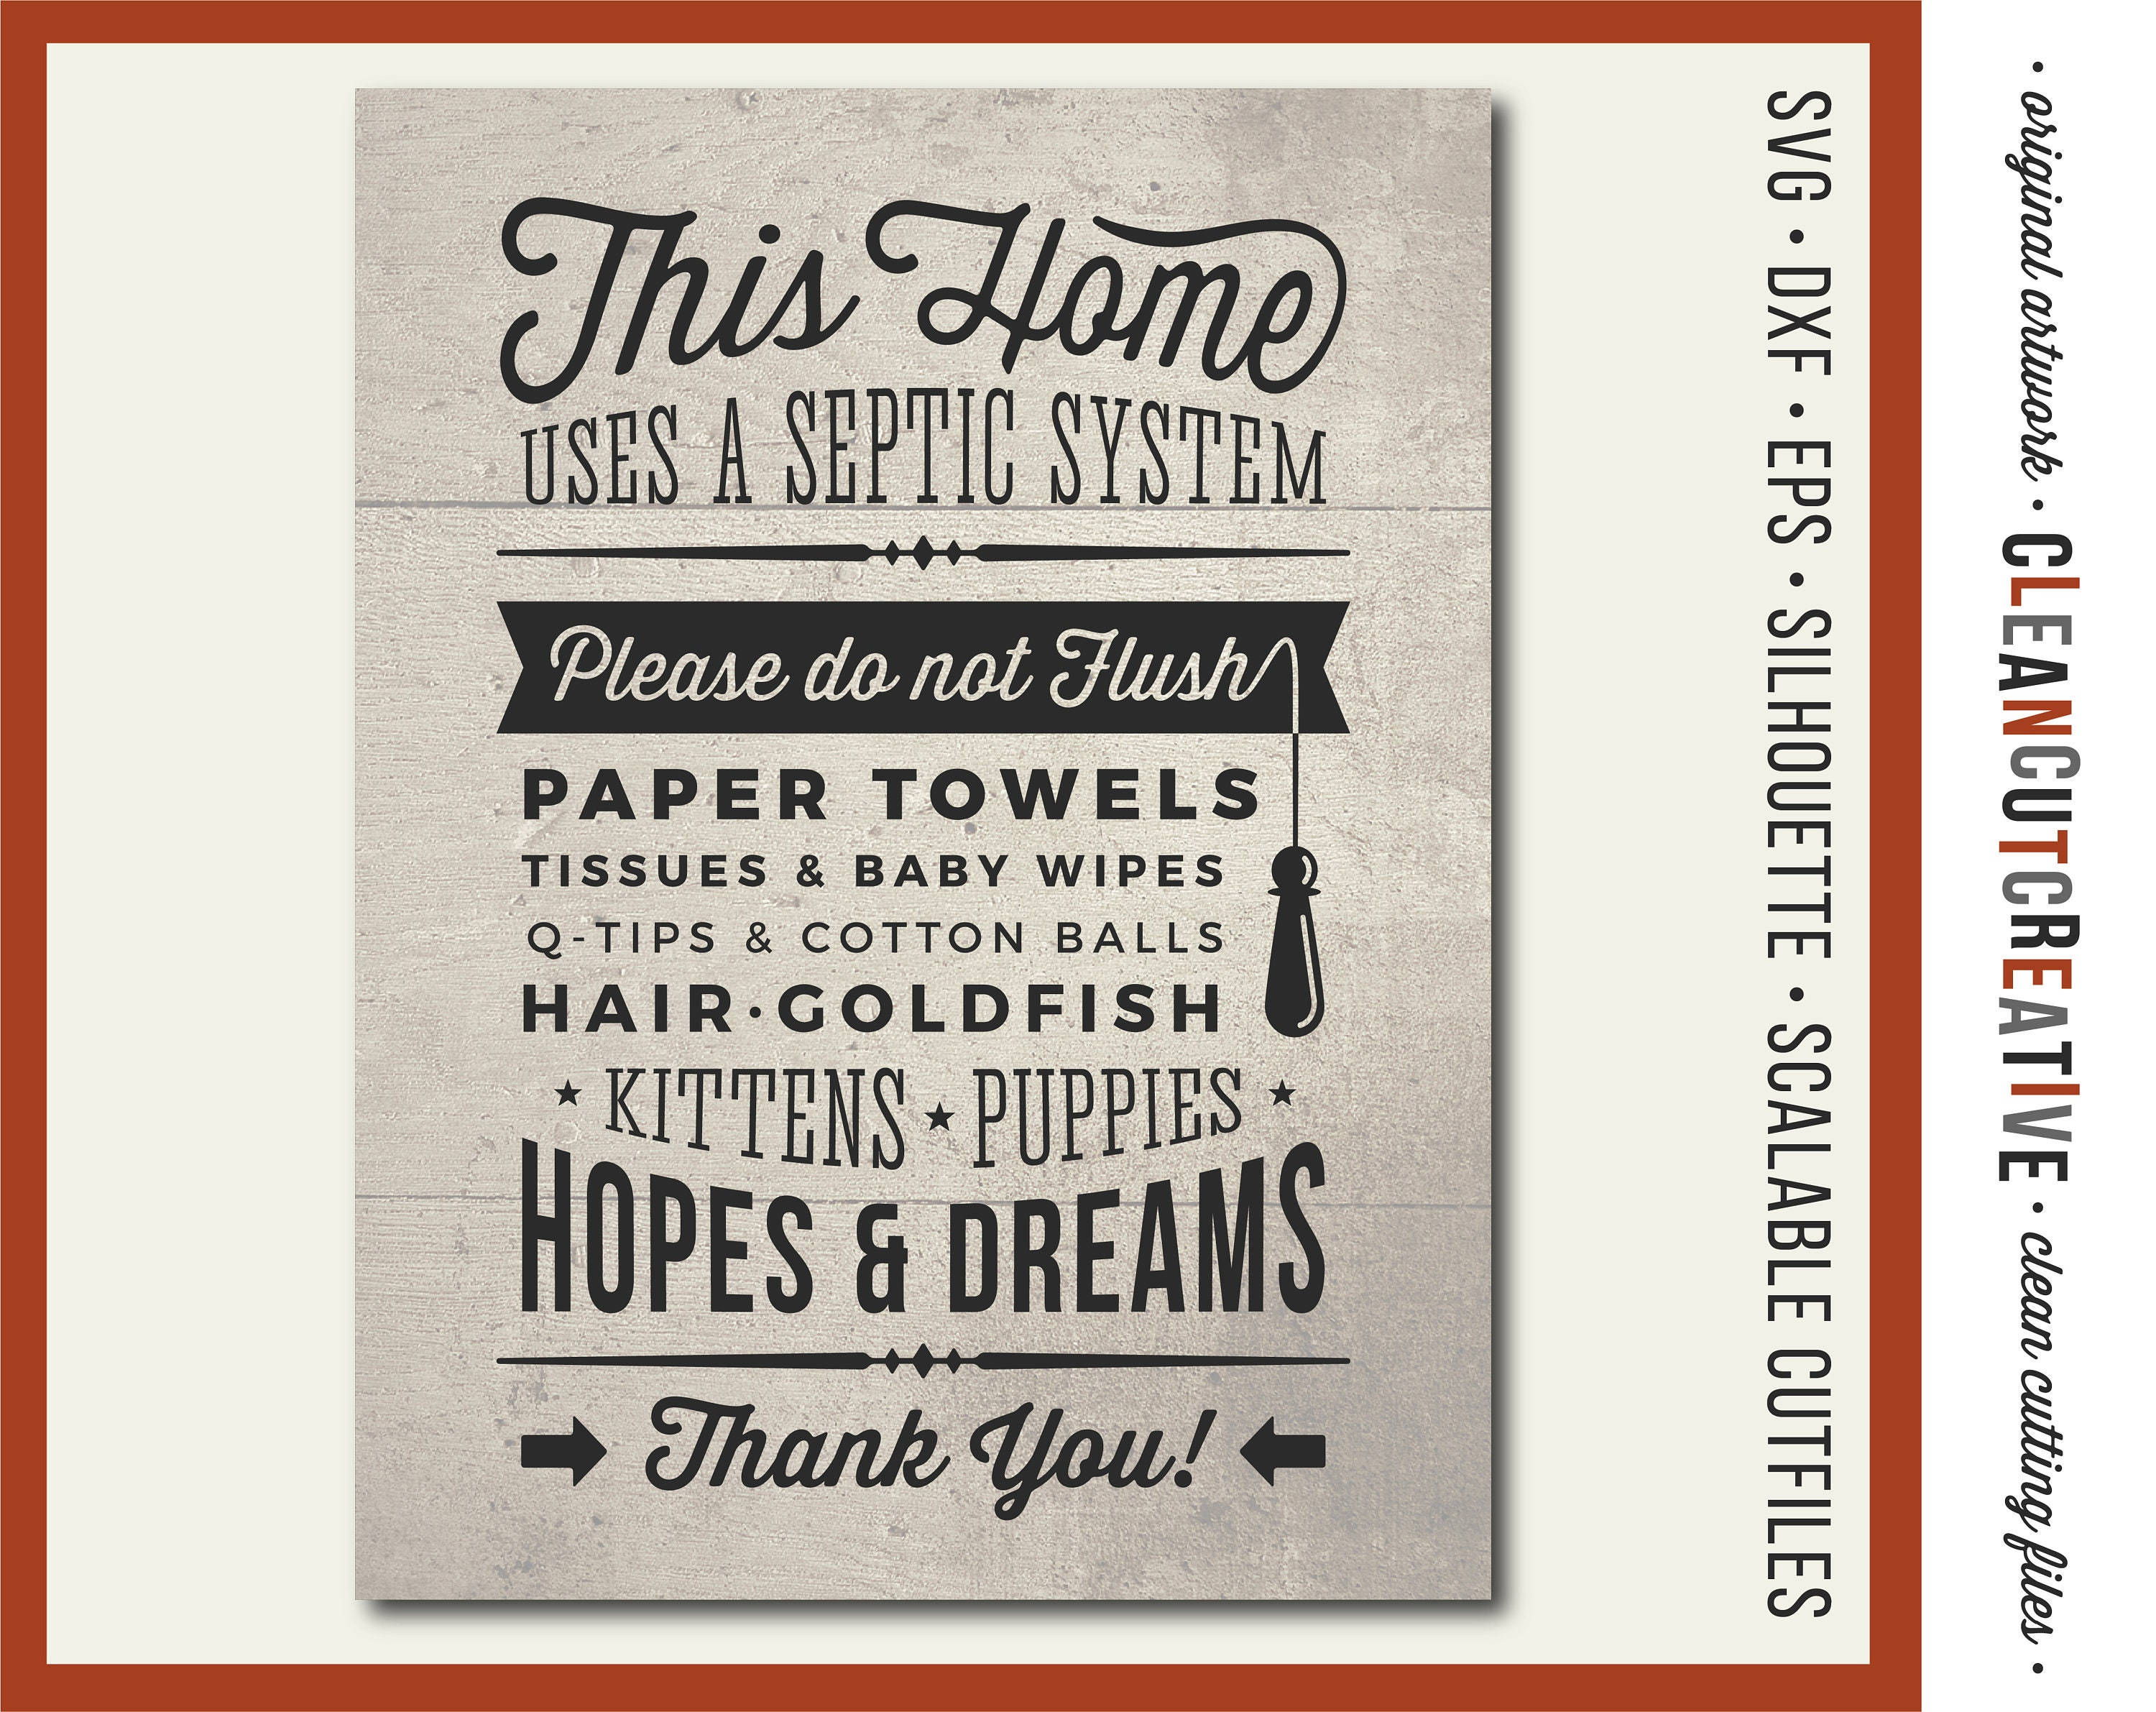 7d3daf065876a SVG Bathroom Sign Septic System - Do Not Flush Hopes & Dreams svg toilet  rustic wood sign svg file design Cricut and Silhouette cutting file